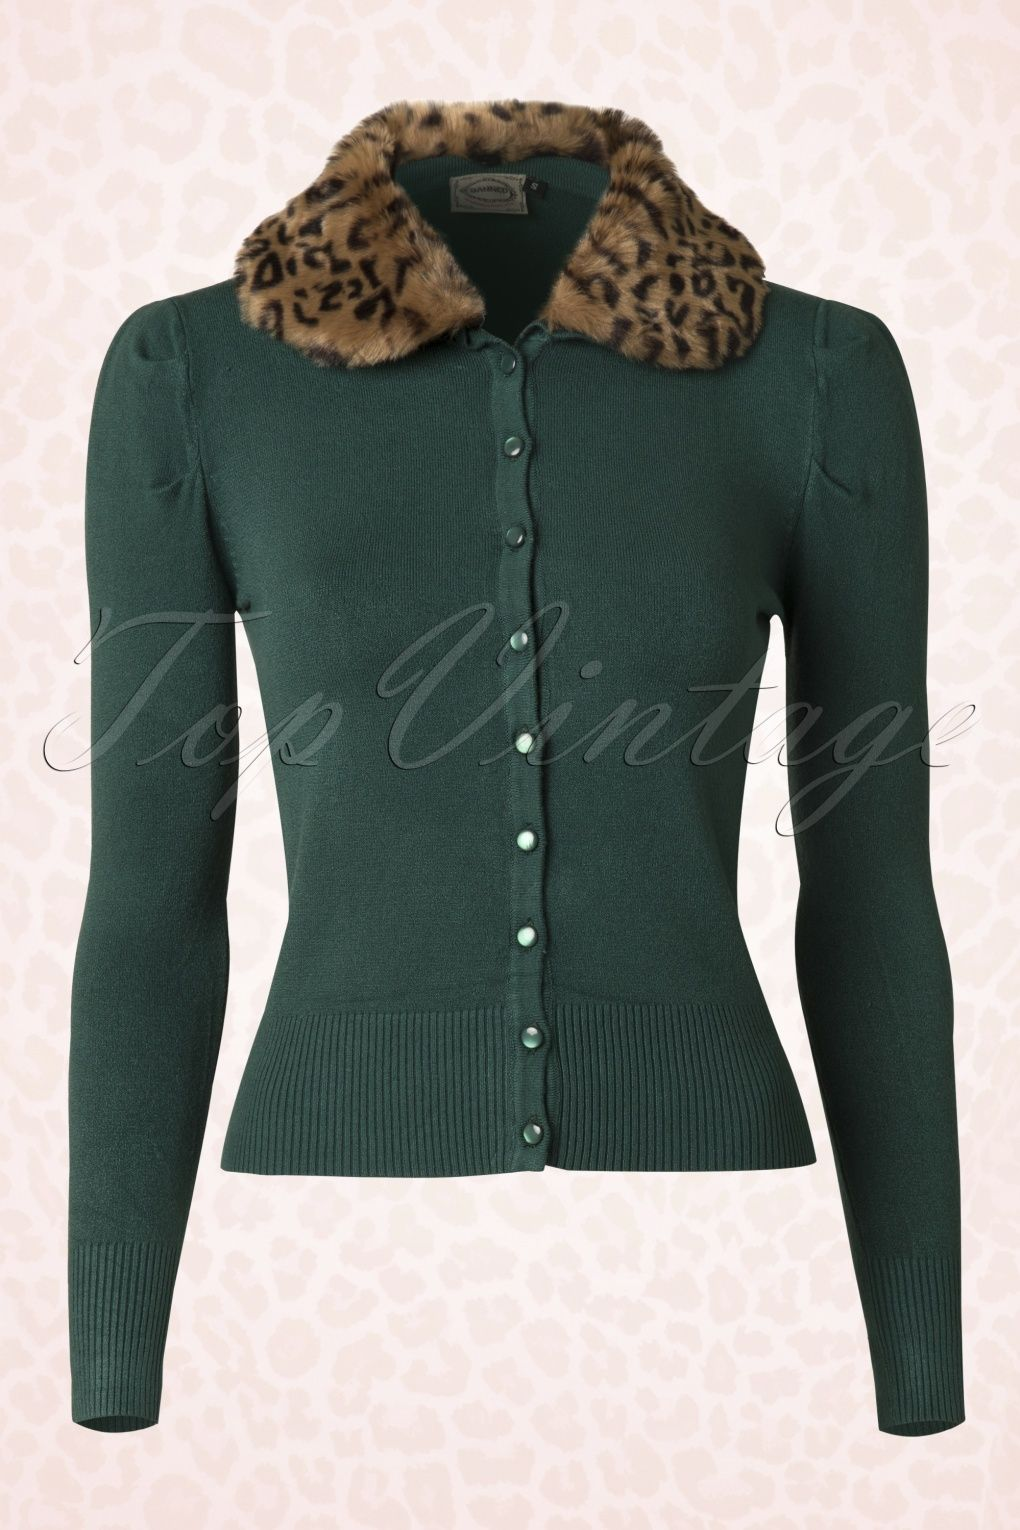 50s Vintage Leopard Cardigan in Forest Green - Banned | Born To Be ...